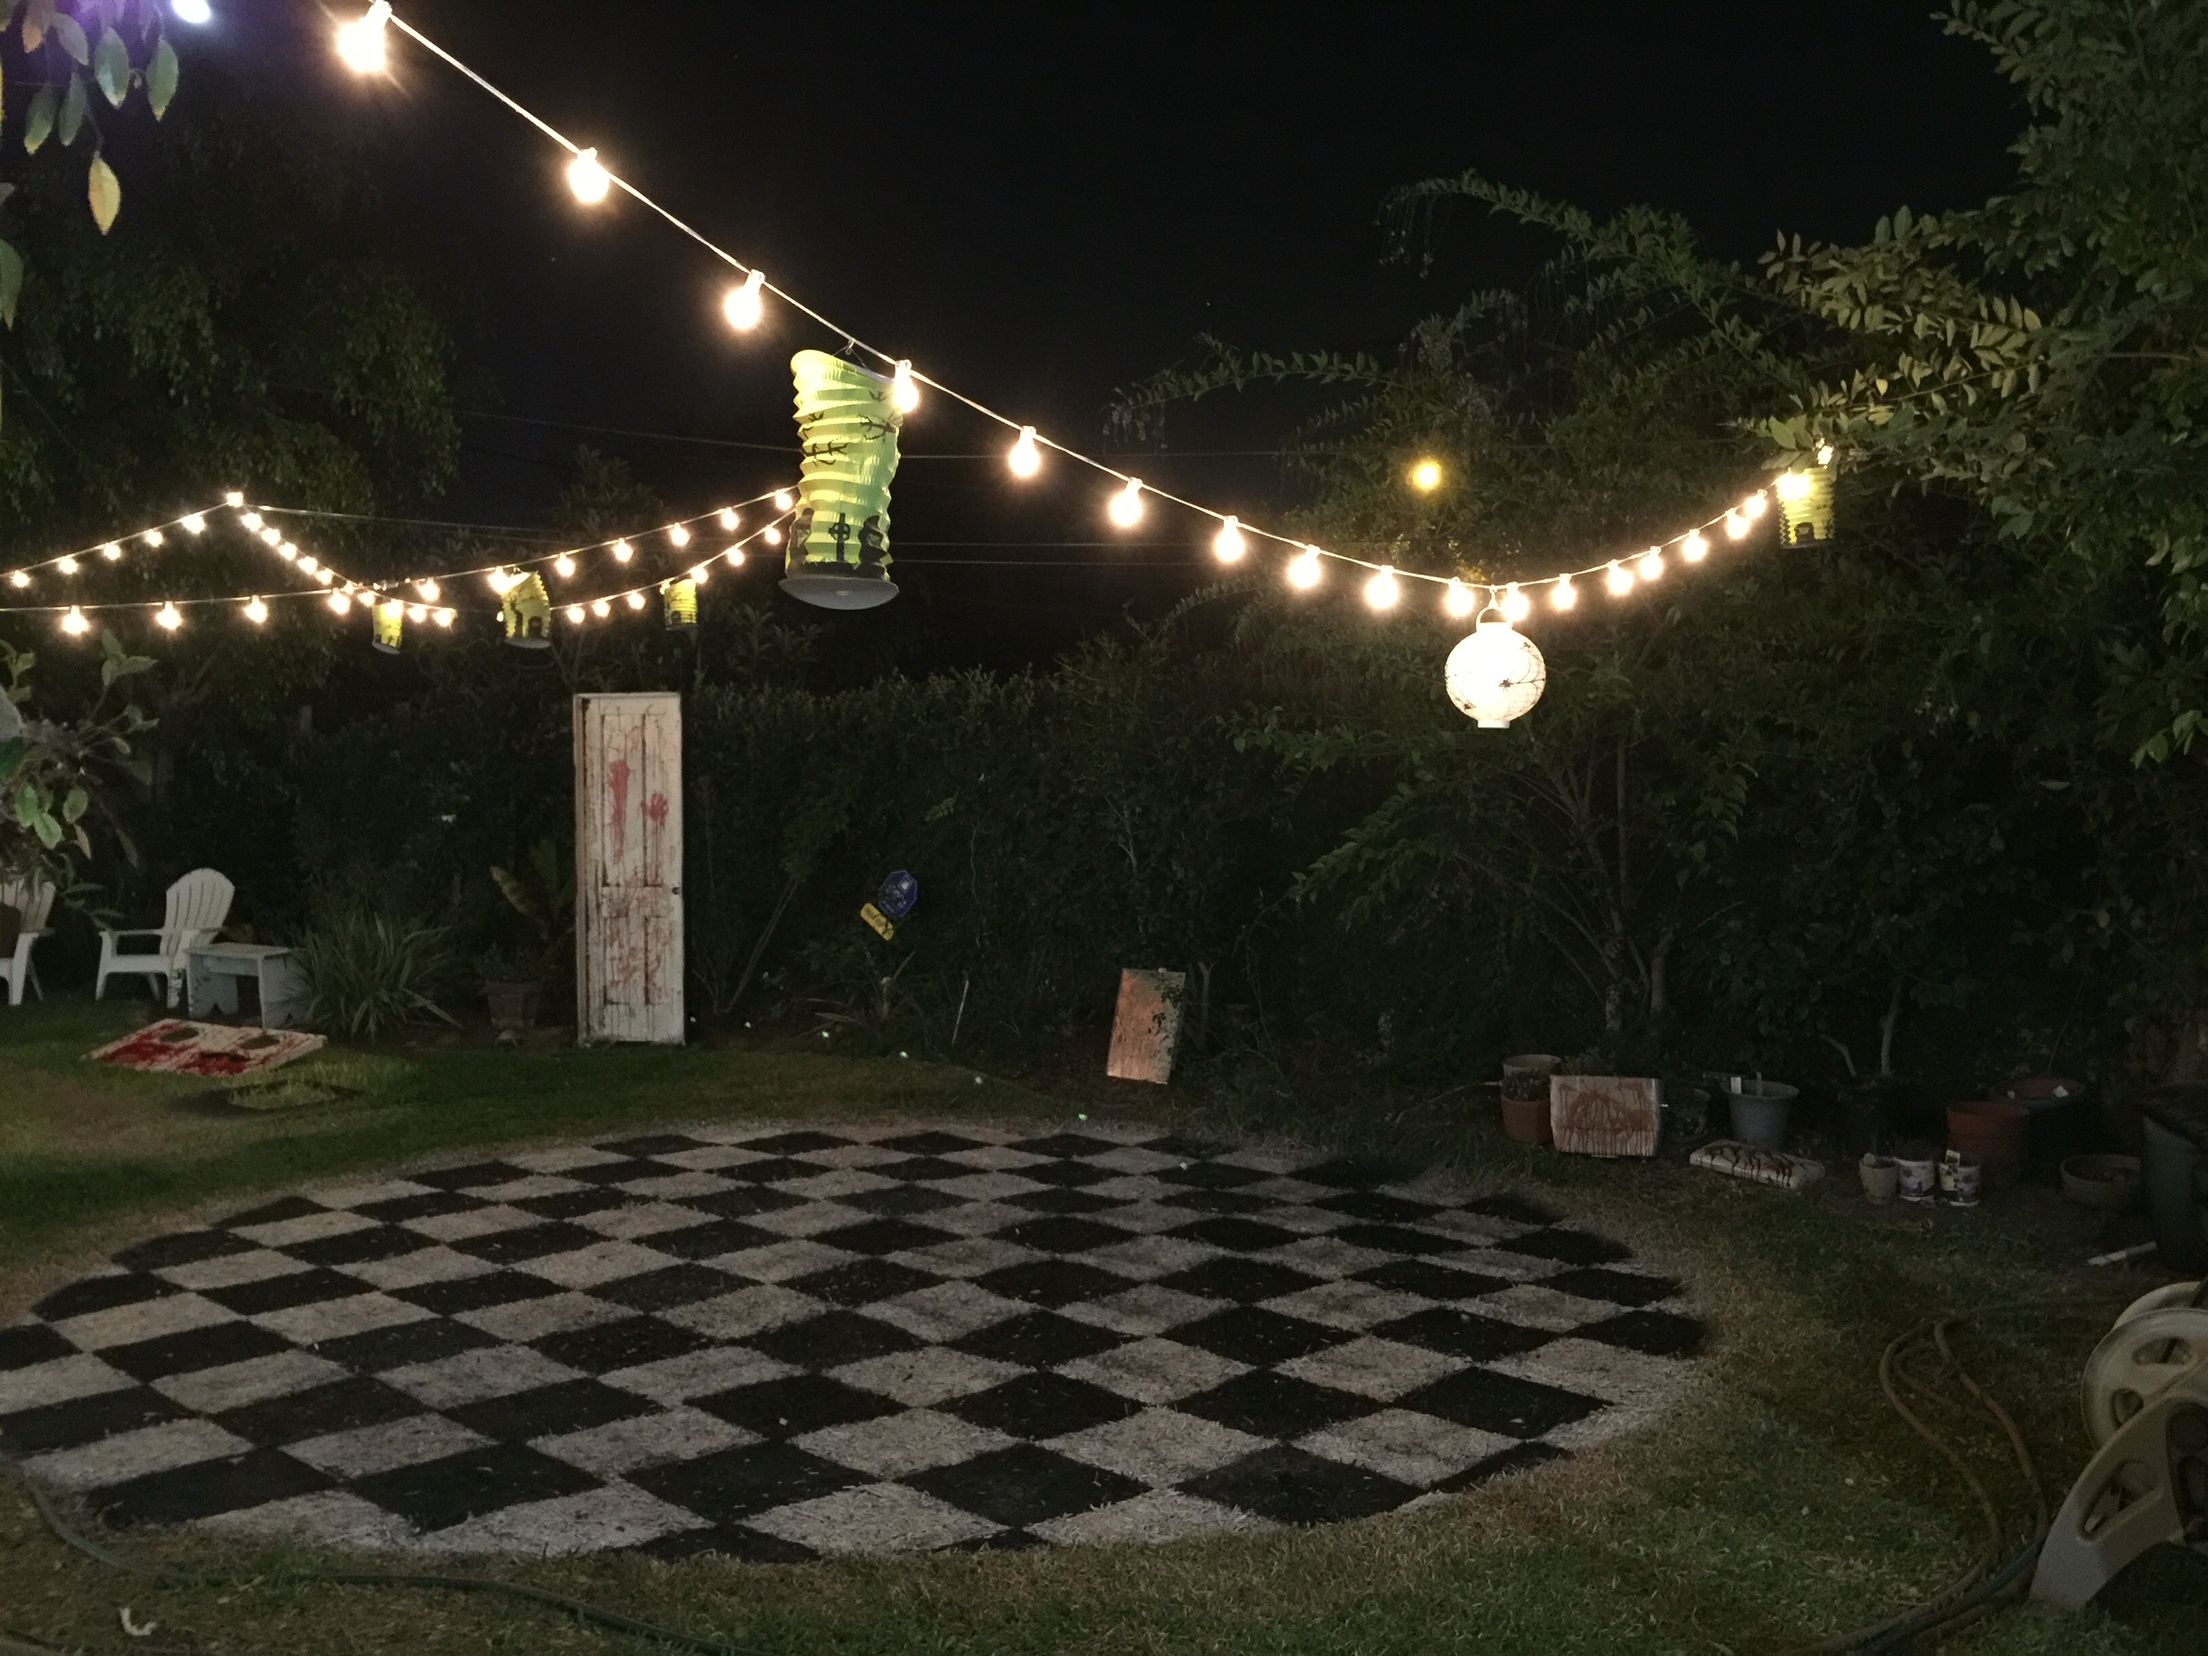 Dance Floor Idea Not Checkered But Painted To Designate Maybe Place Plant Hangers With Lights On The Edges Terrazas